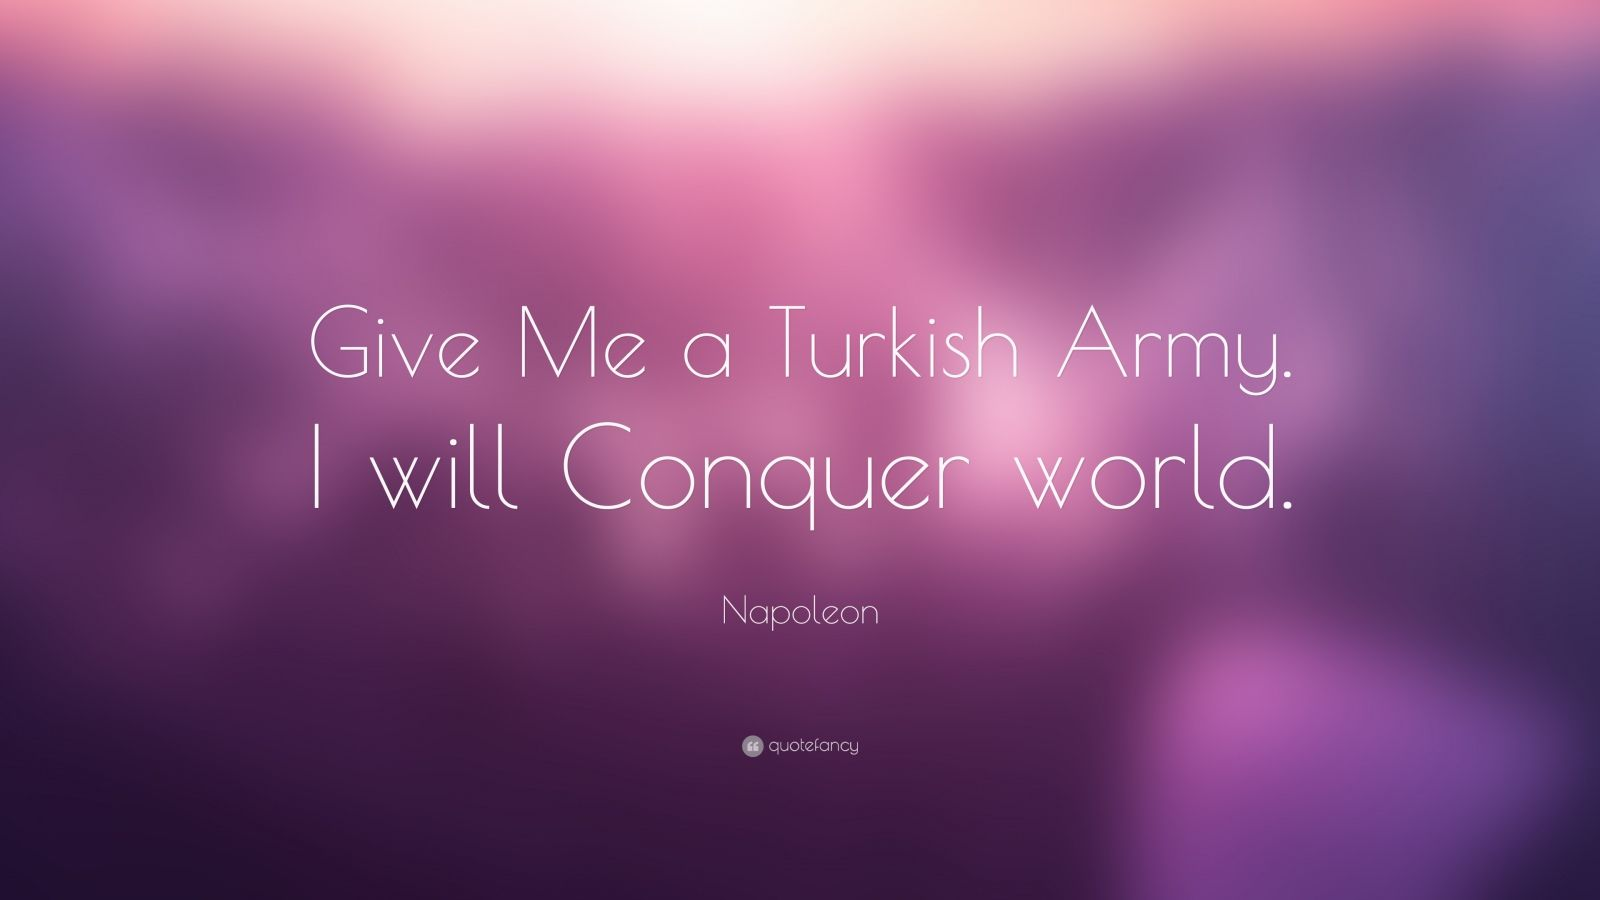 Mother Teresa Quotes Wallpapers Napoleon Quote Give Me A Turkish Army I Will Conquer